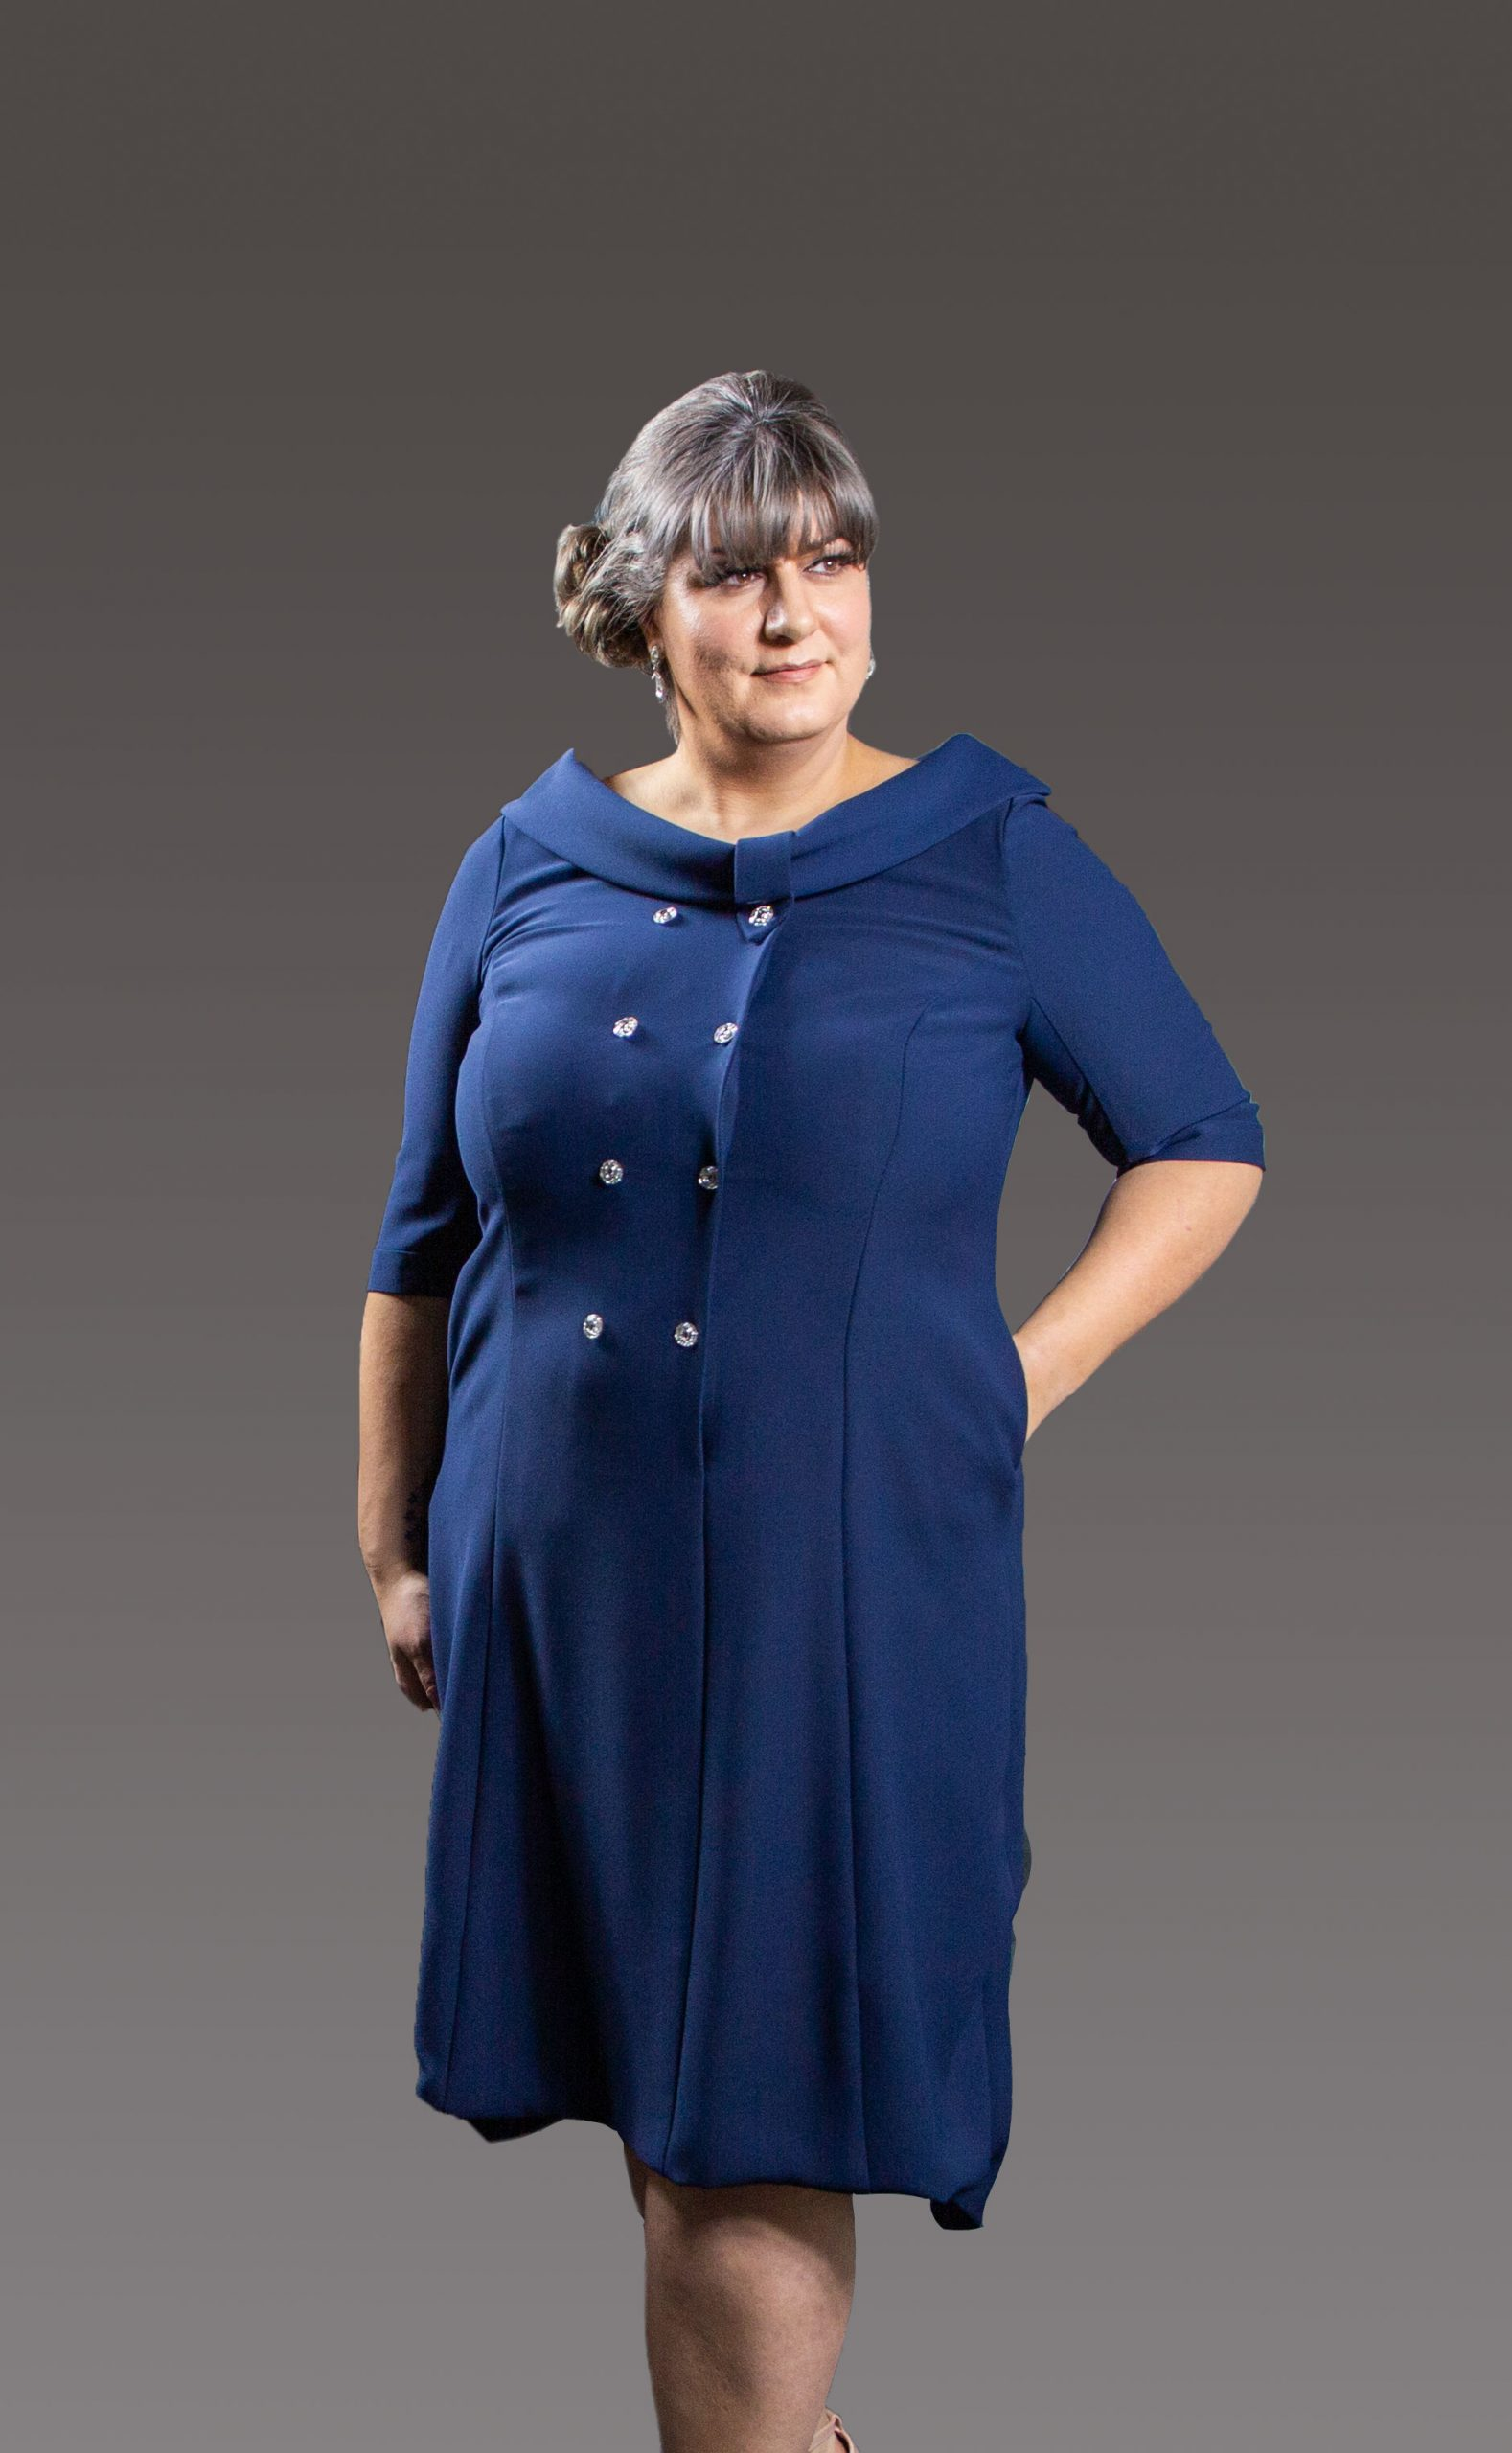 High-Low/dipped hem designed coat dress. Boat neckline and eye catching diamante buttons makes this stunning dress stand out in a crowd. Navy and Blush - 8054- 2 - 3923 - 0259 (004296)